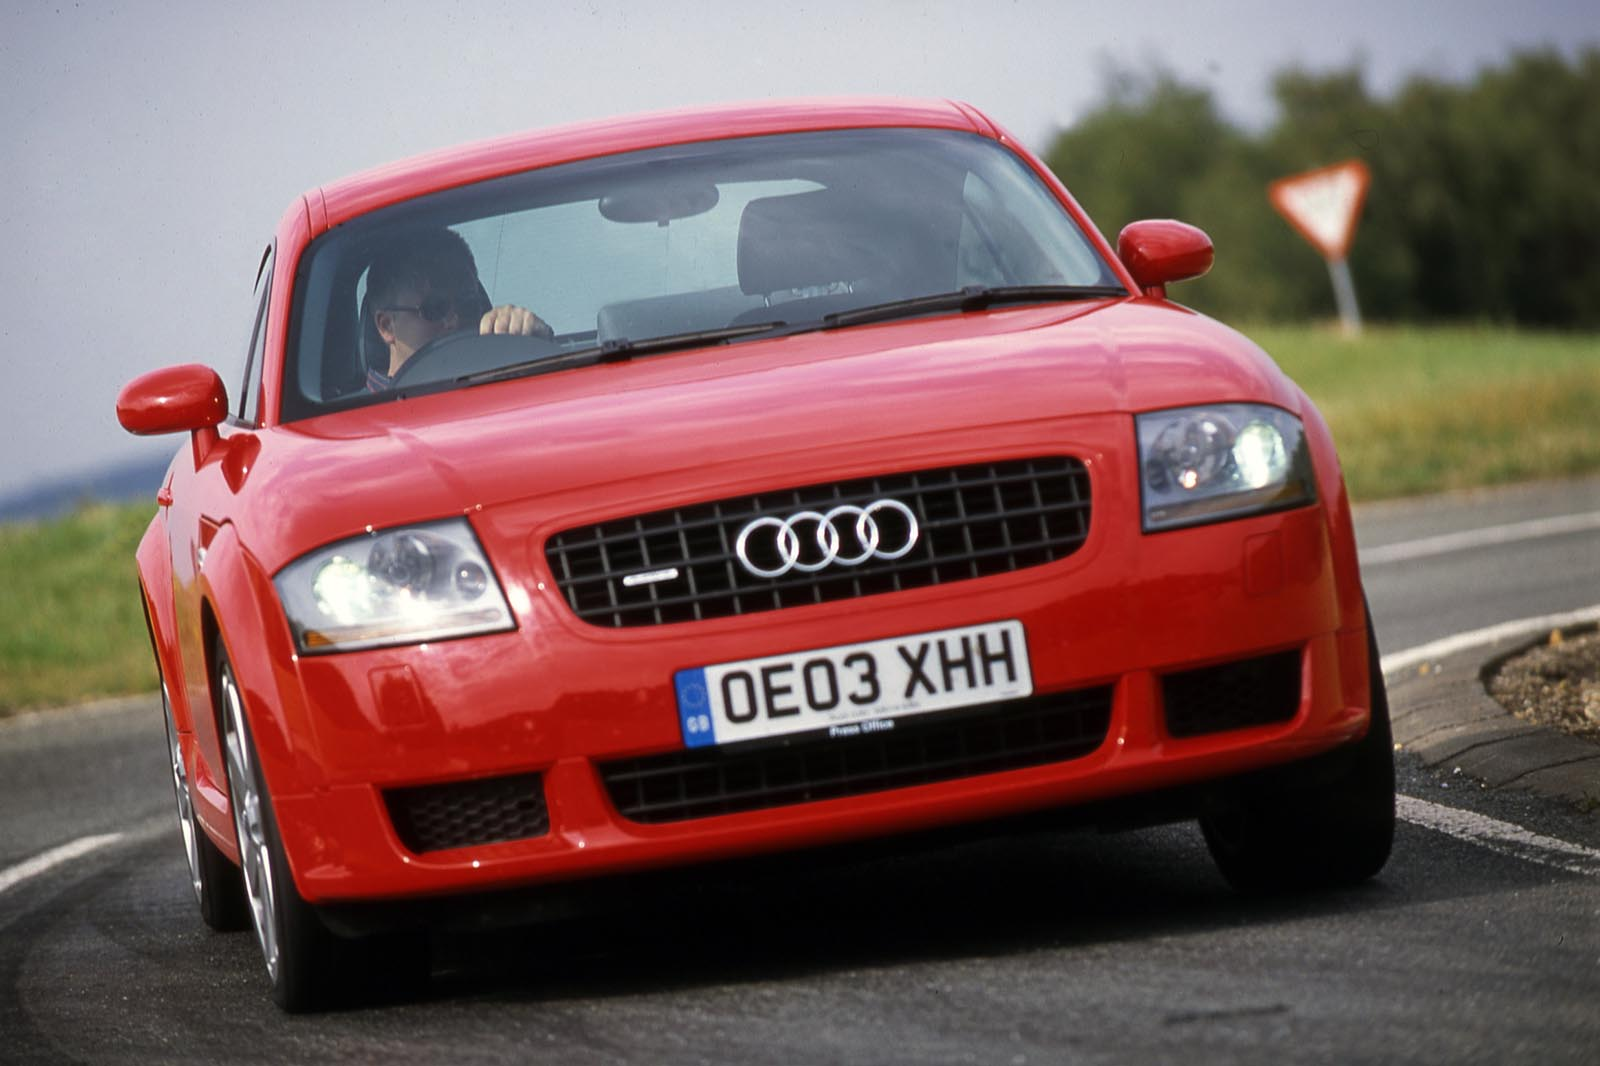 Audi Tt Used Car Buying Guide Autocar 2000 Corolla Fuel Filter Location